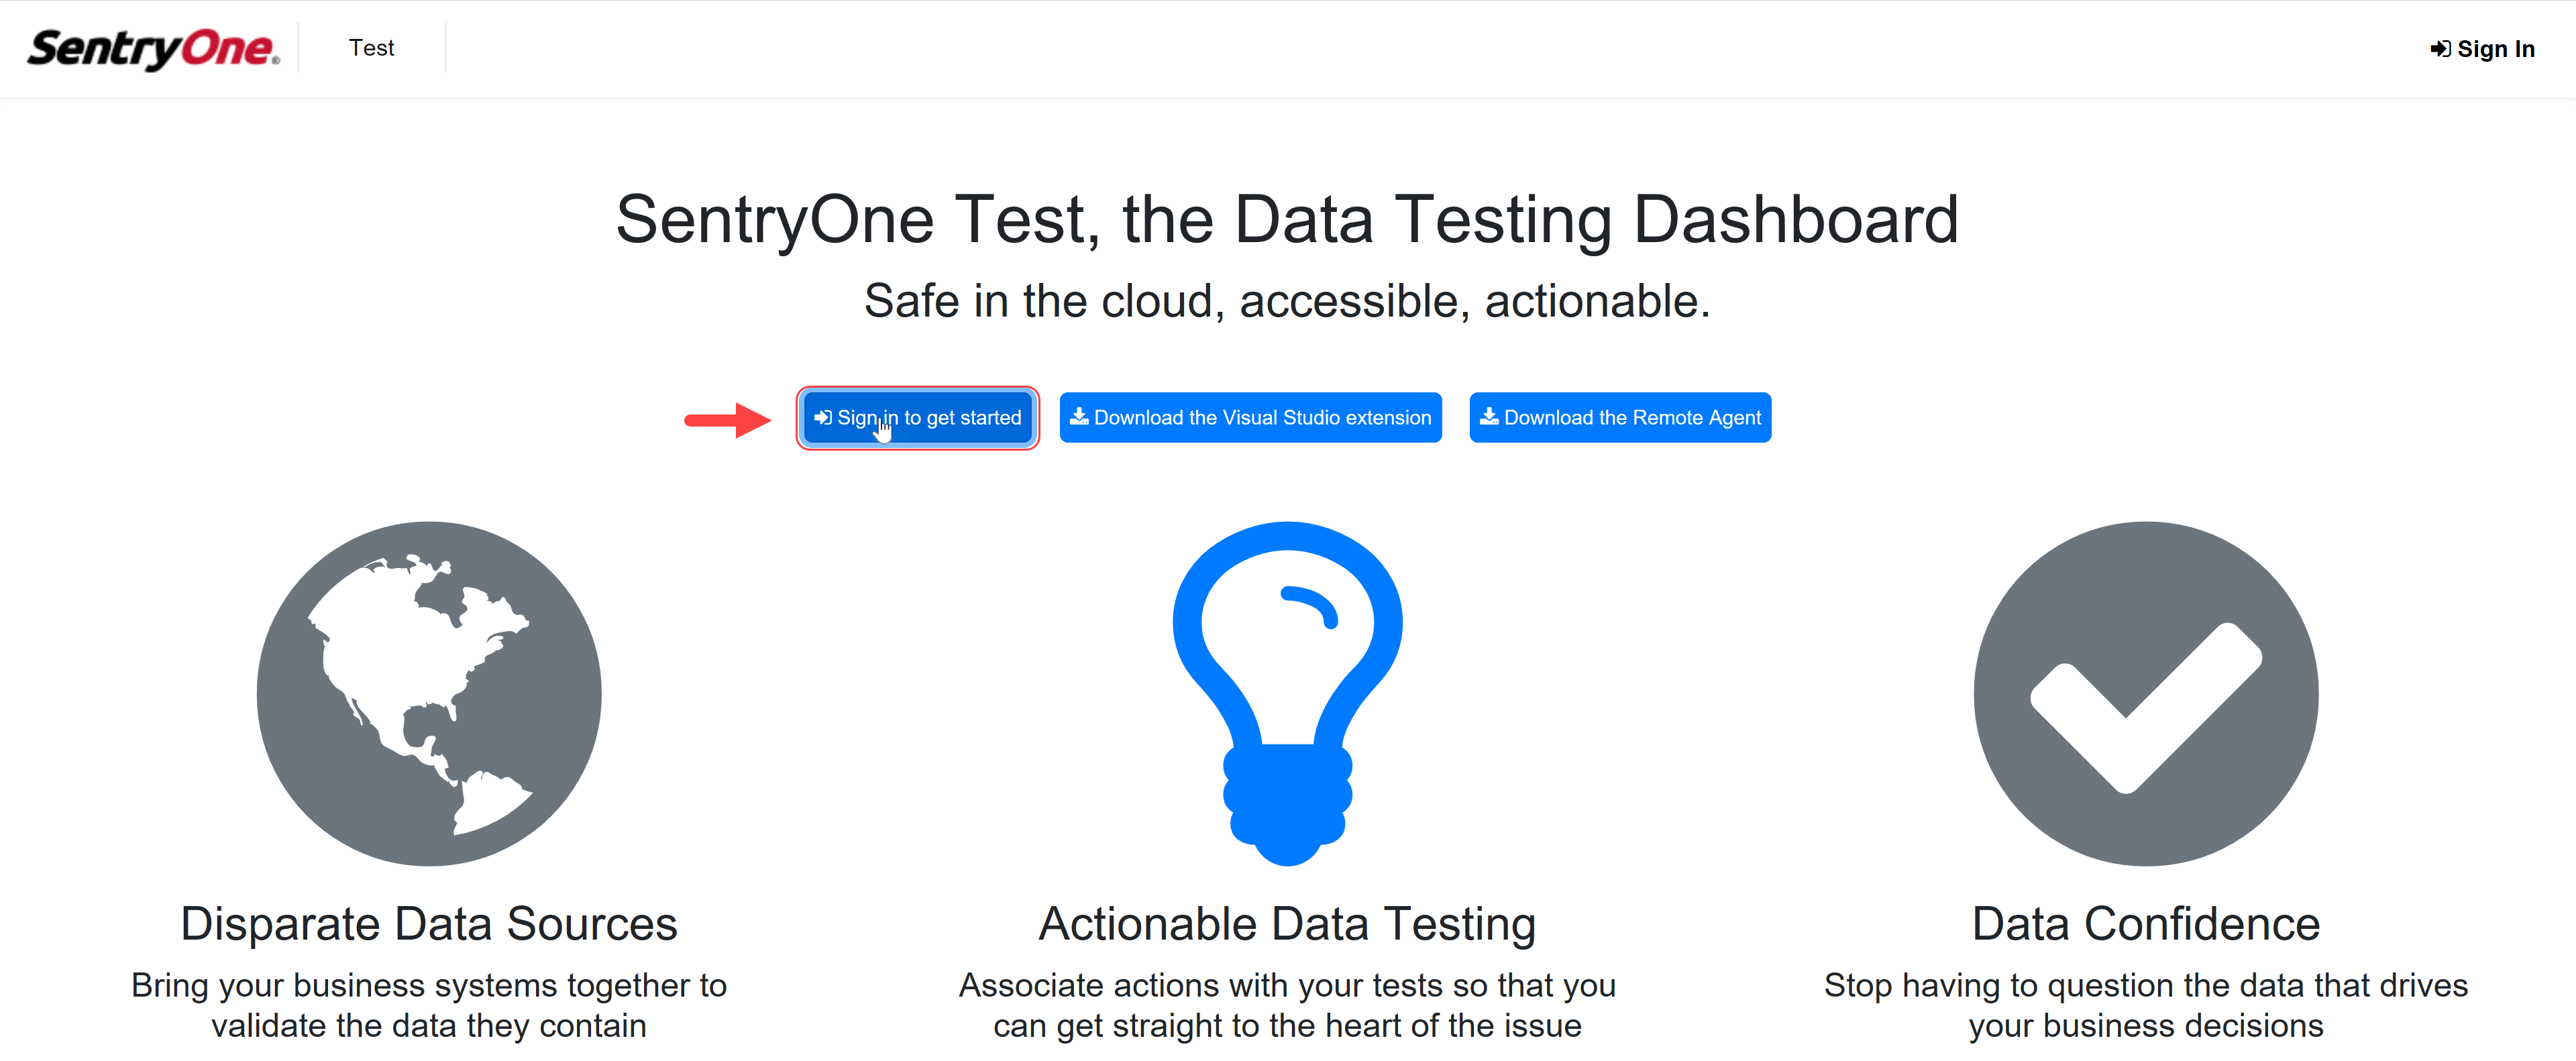 SentryOne Test Web Portal Sign in to get started